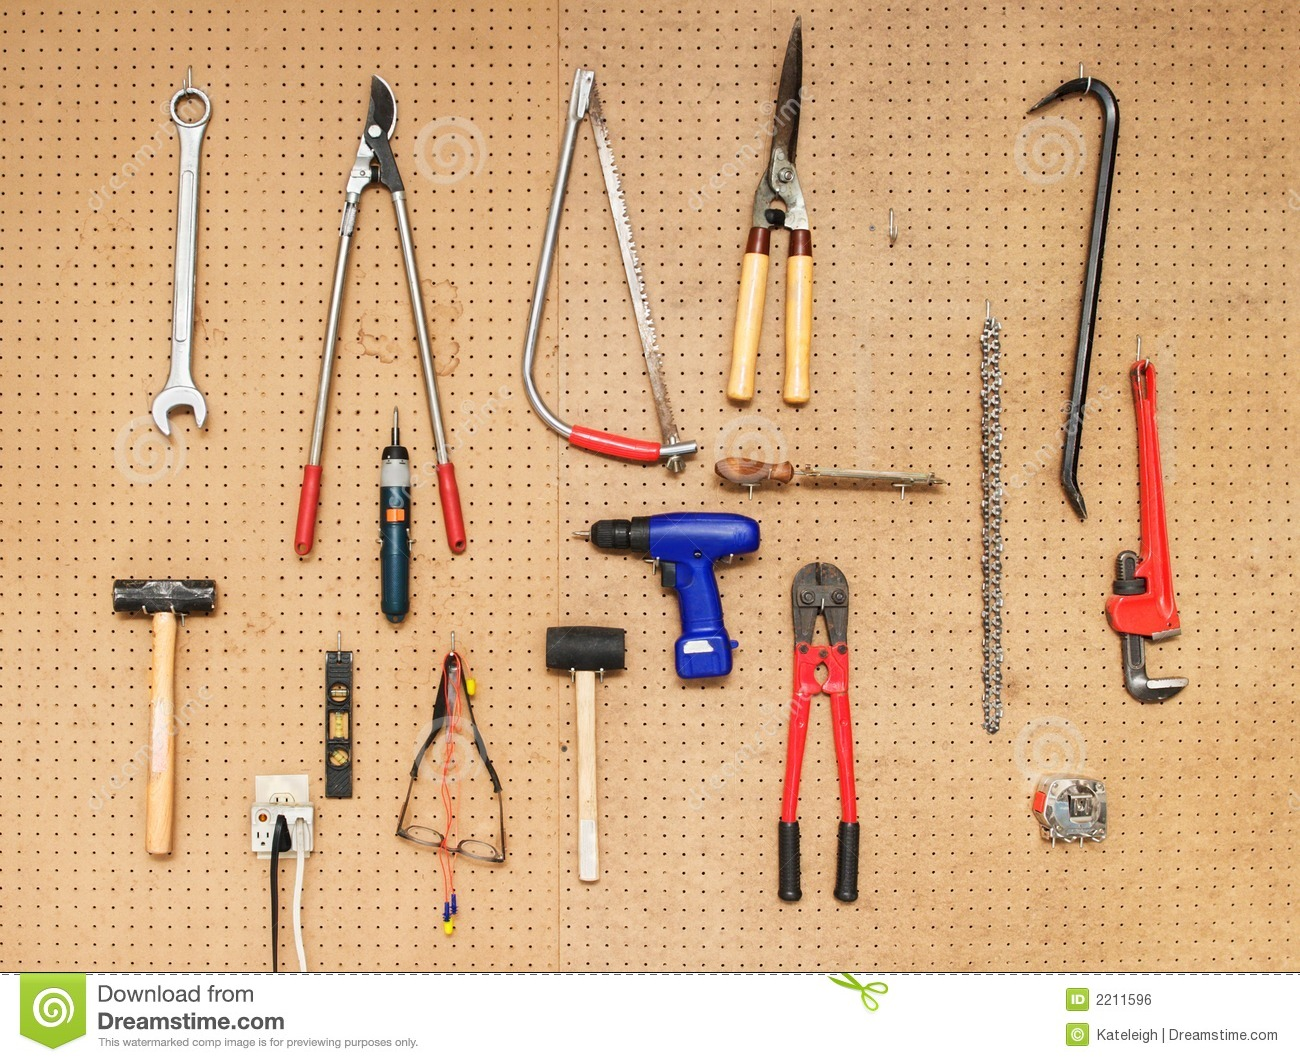 Various tools hanging on a pegboard wall